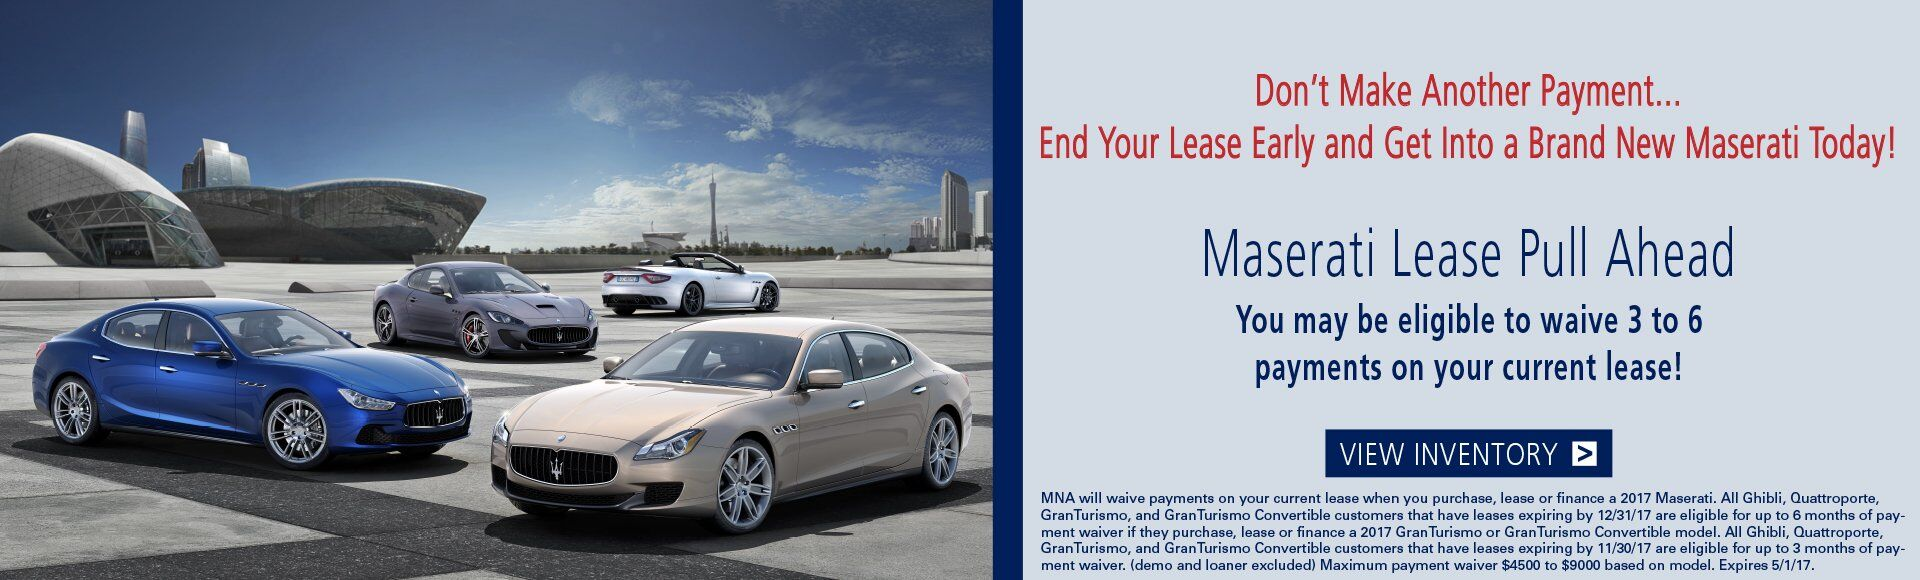 Maserati Lease Pull Ahead Event